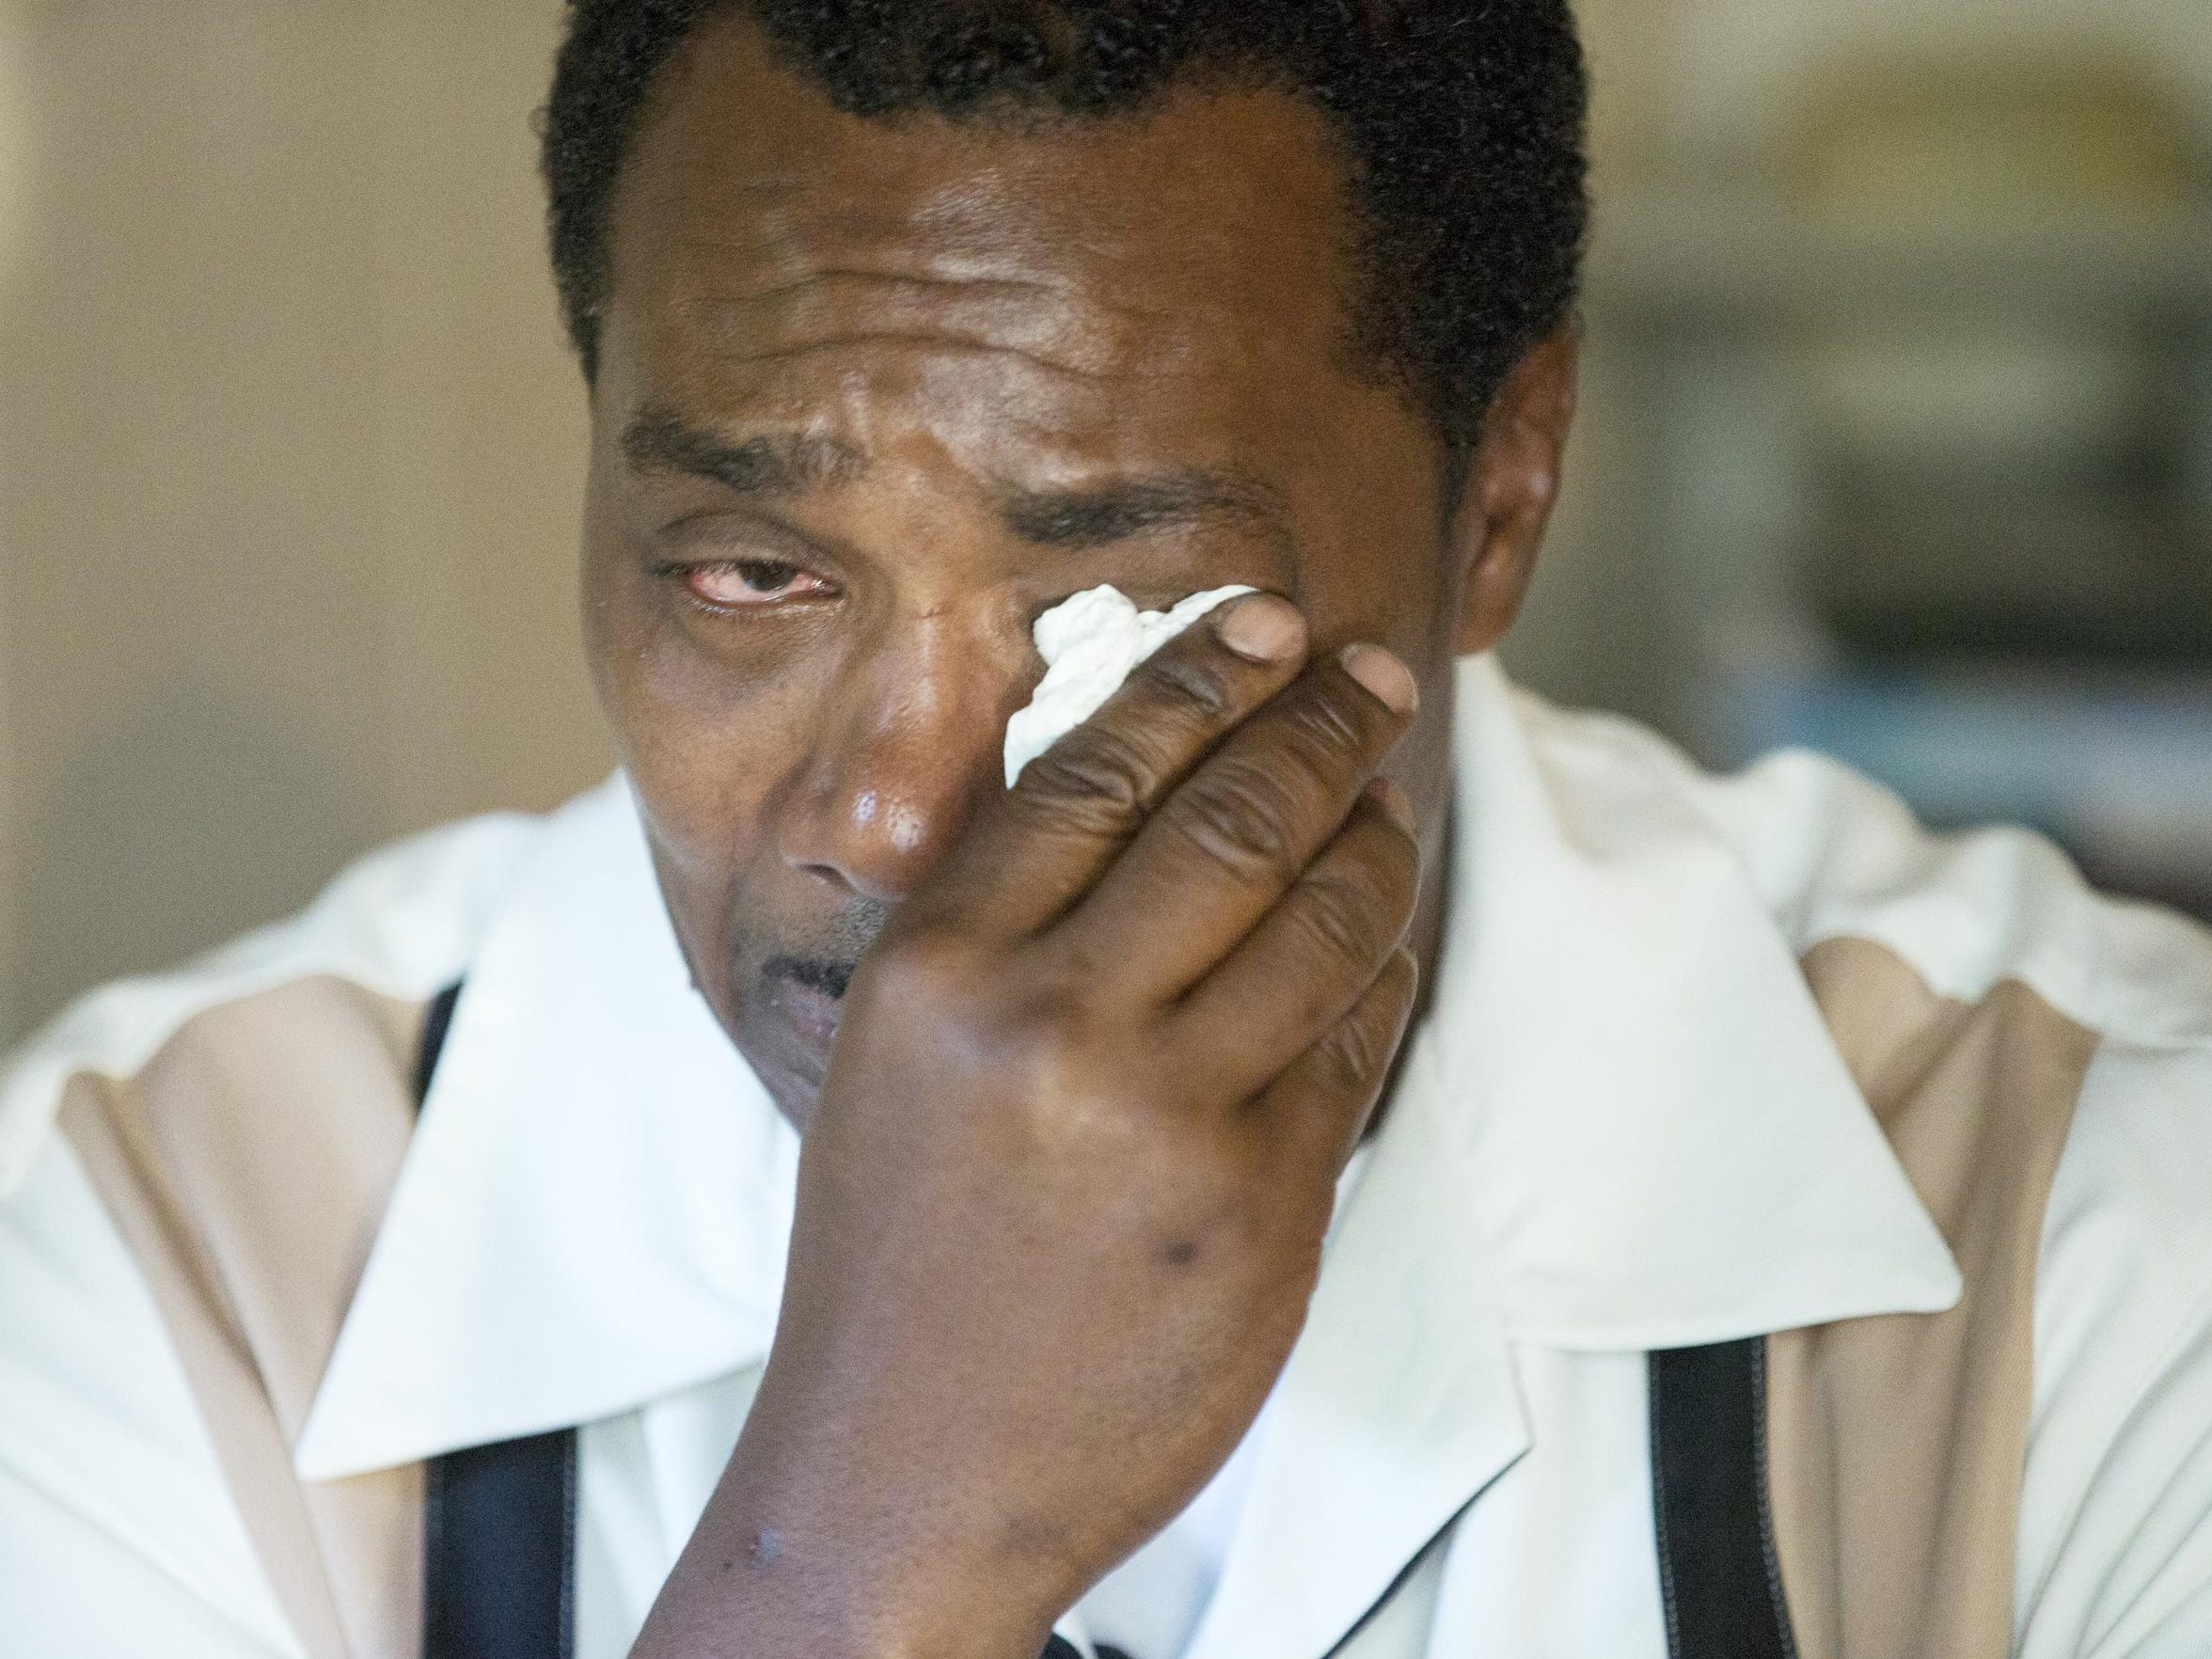 Keith Cooper, 48, cries as he recalls details of his